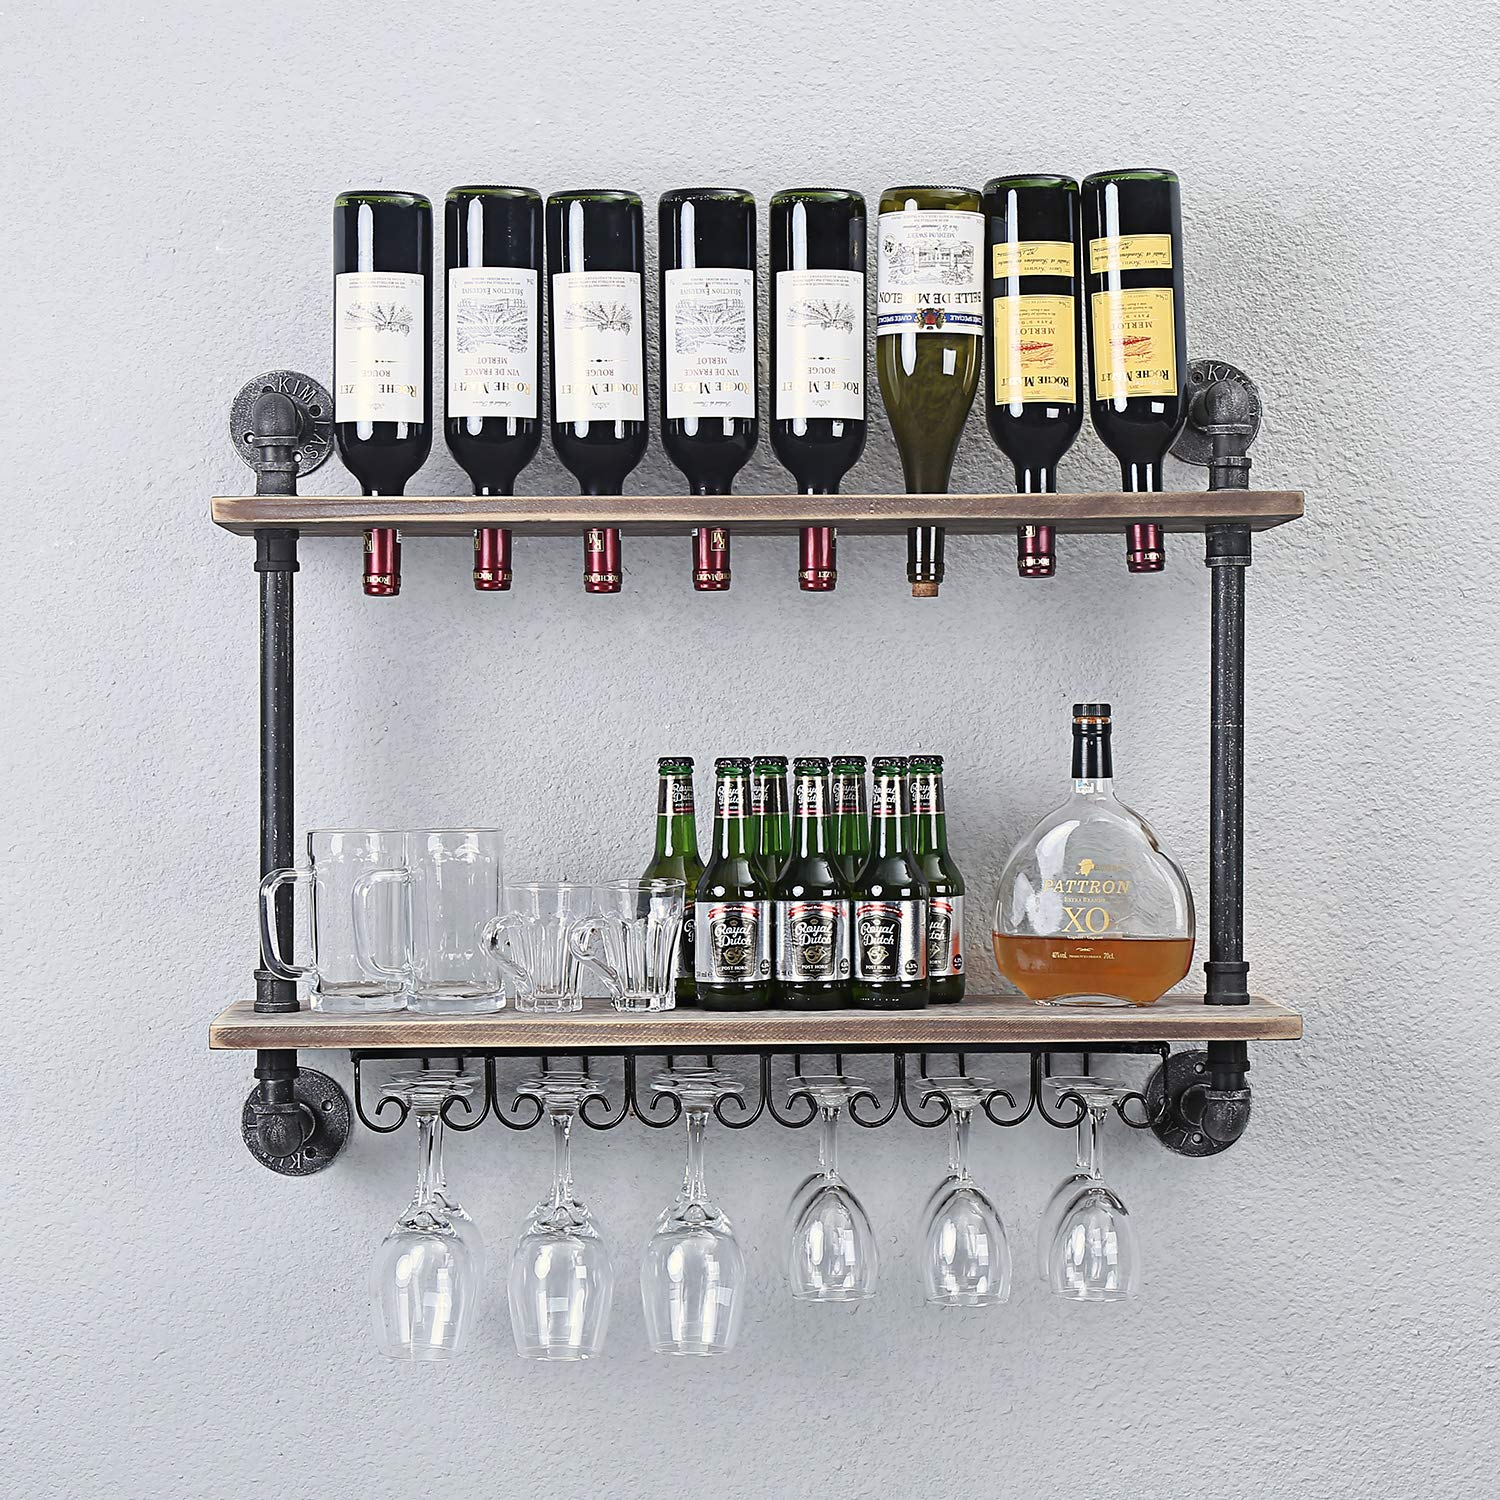 WGX Design For You Industrial Rustic Wall Mounted Wine Racks with Glass Holder Pipe Hanging Wine Rack,2-Tiers Wood Shelf Floating Shelves,Home Room Living Room Kitchen Decor Display Rack (24inch)